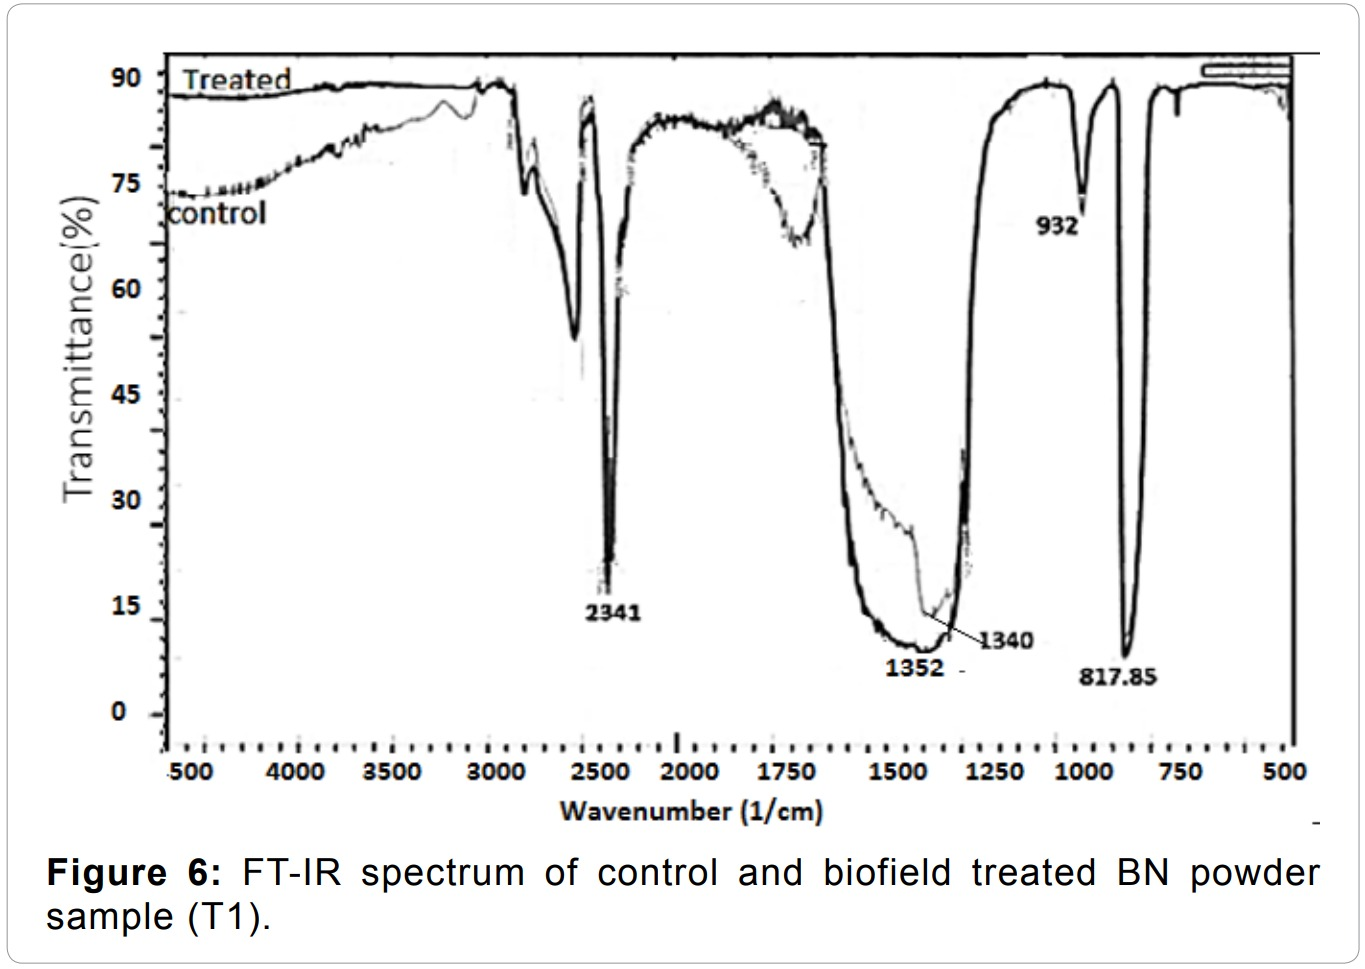 Influence of Biofield Treatment on Physical, Structural and Spectral